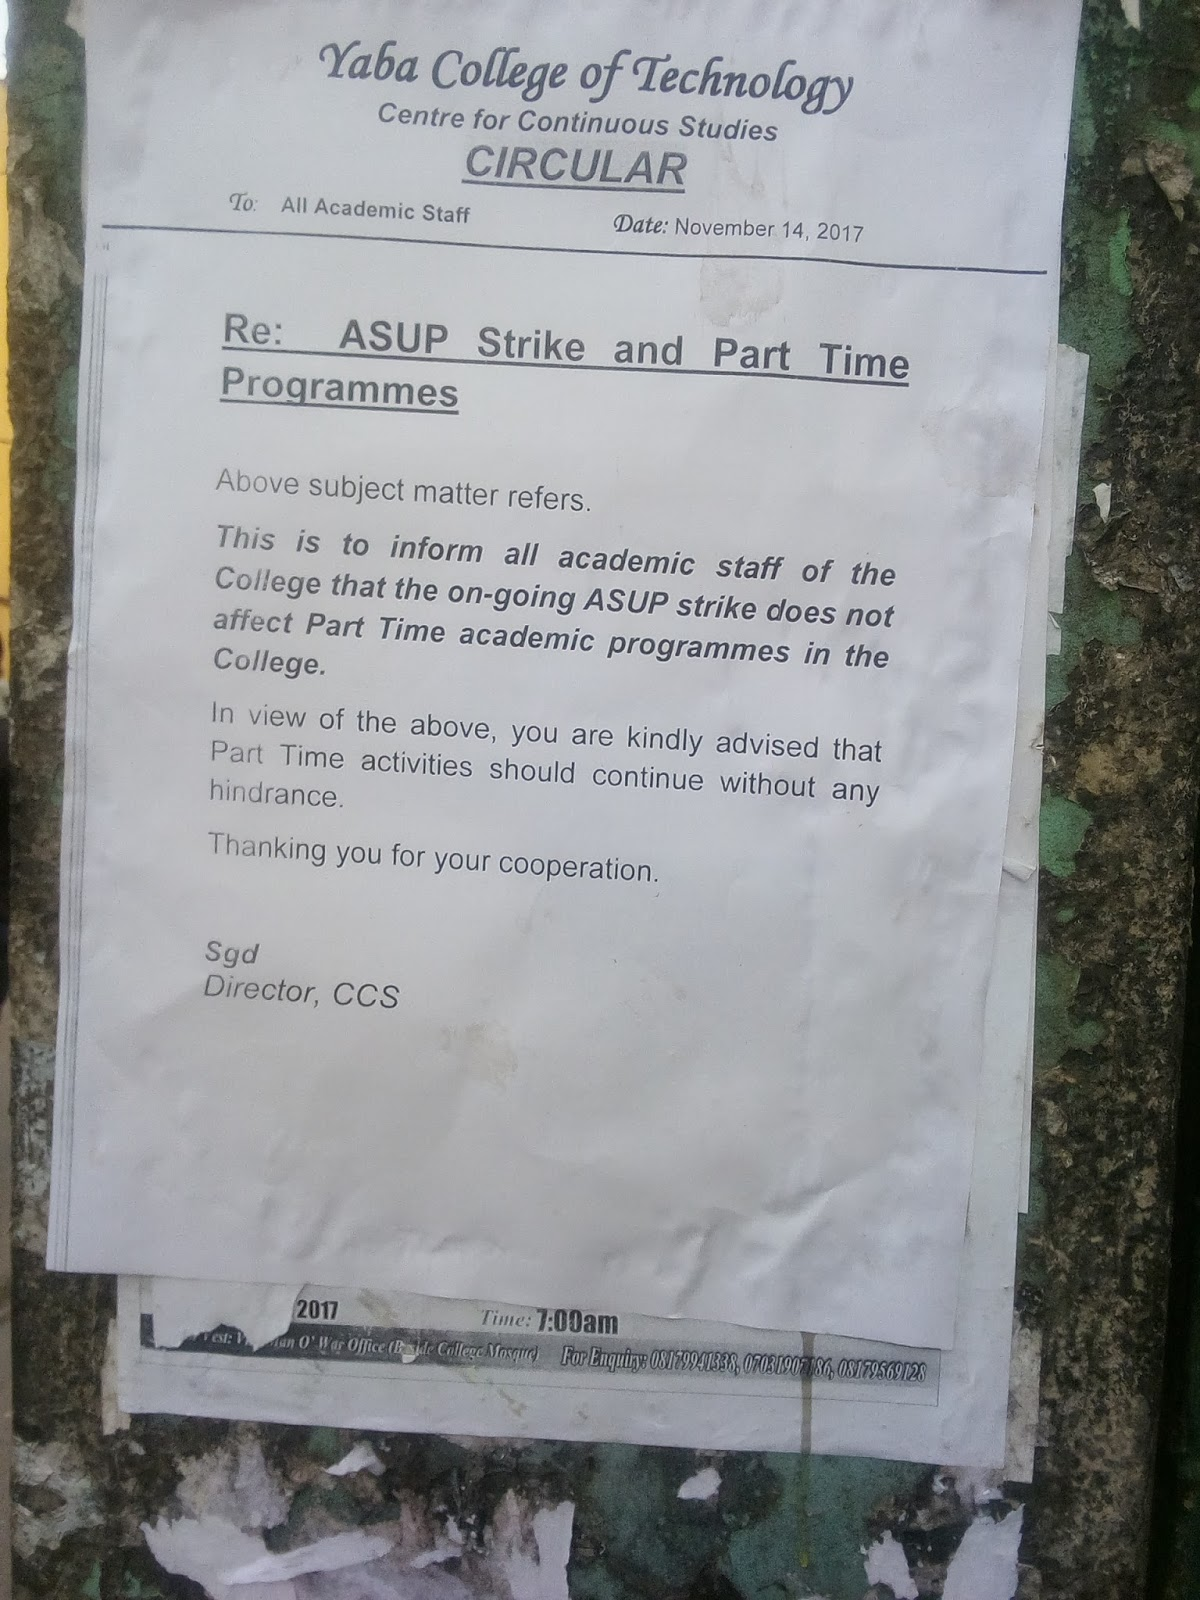 Yabatech: ASUP strike does not affect Part-Time Programmes.